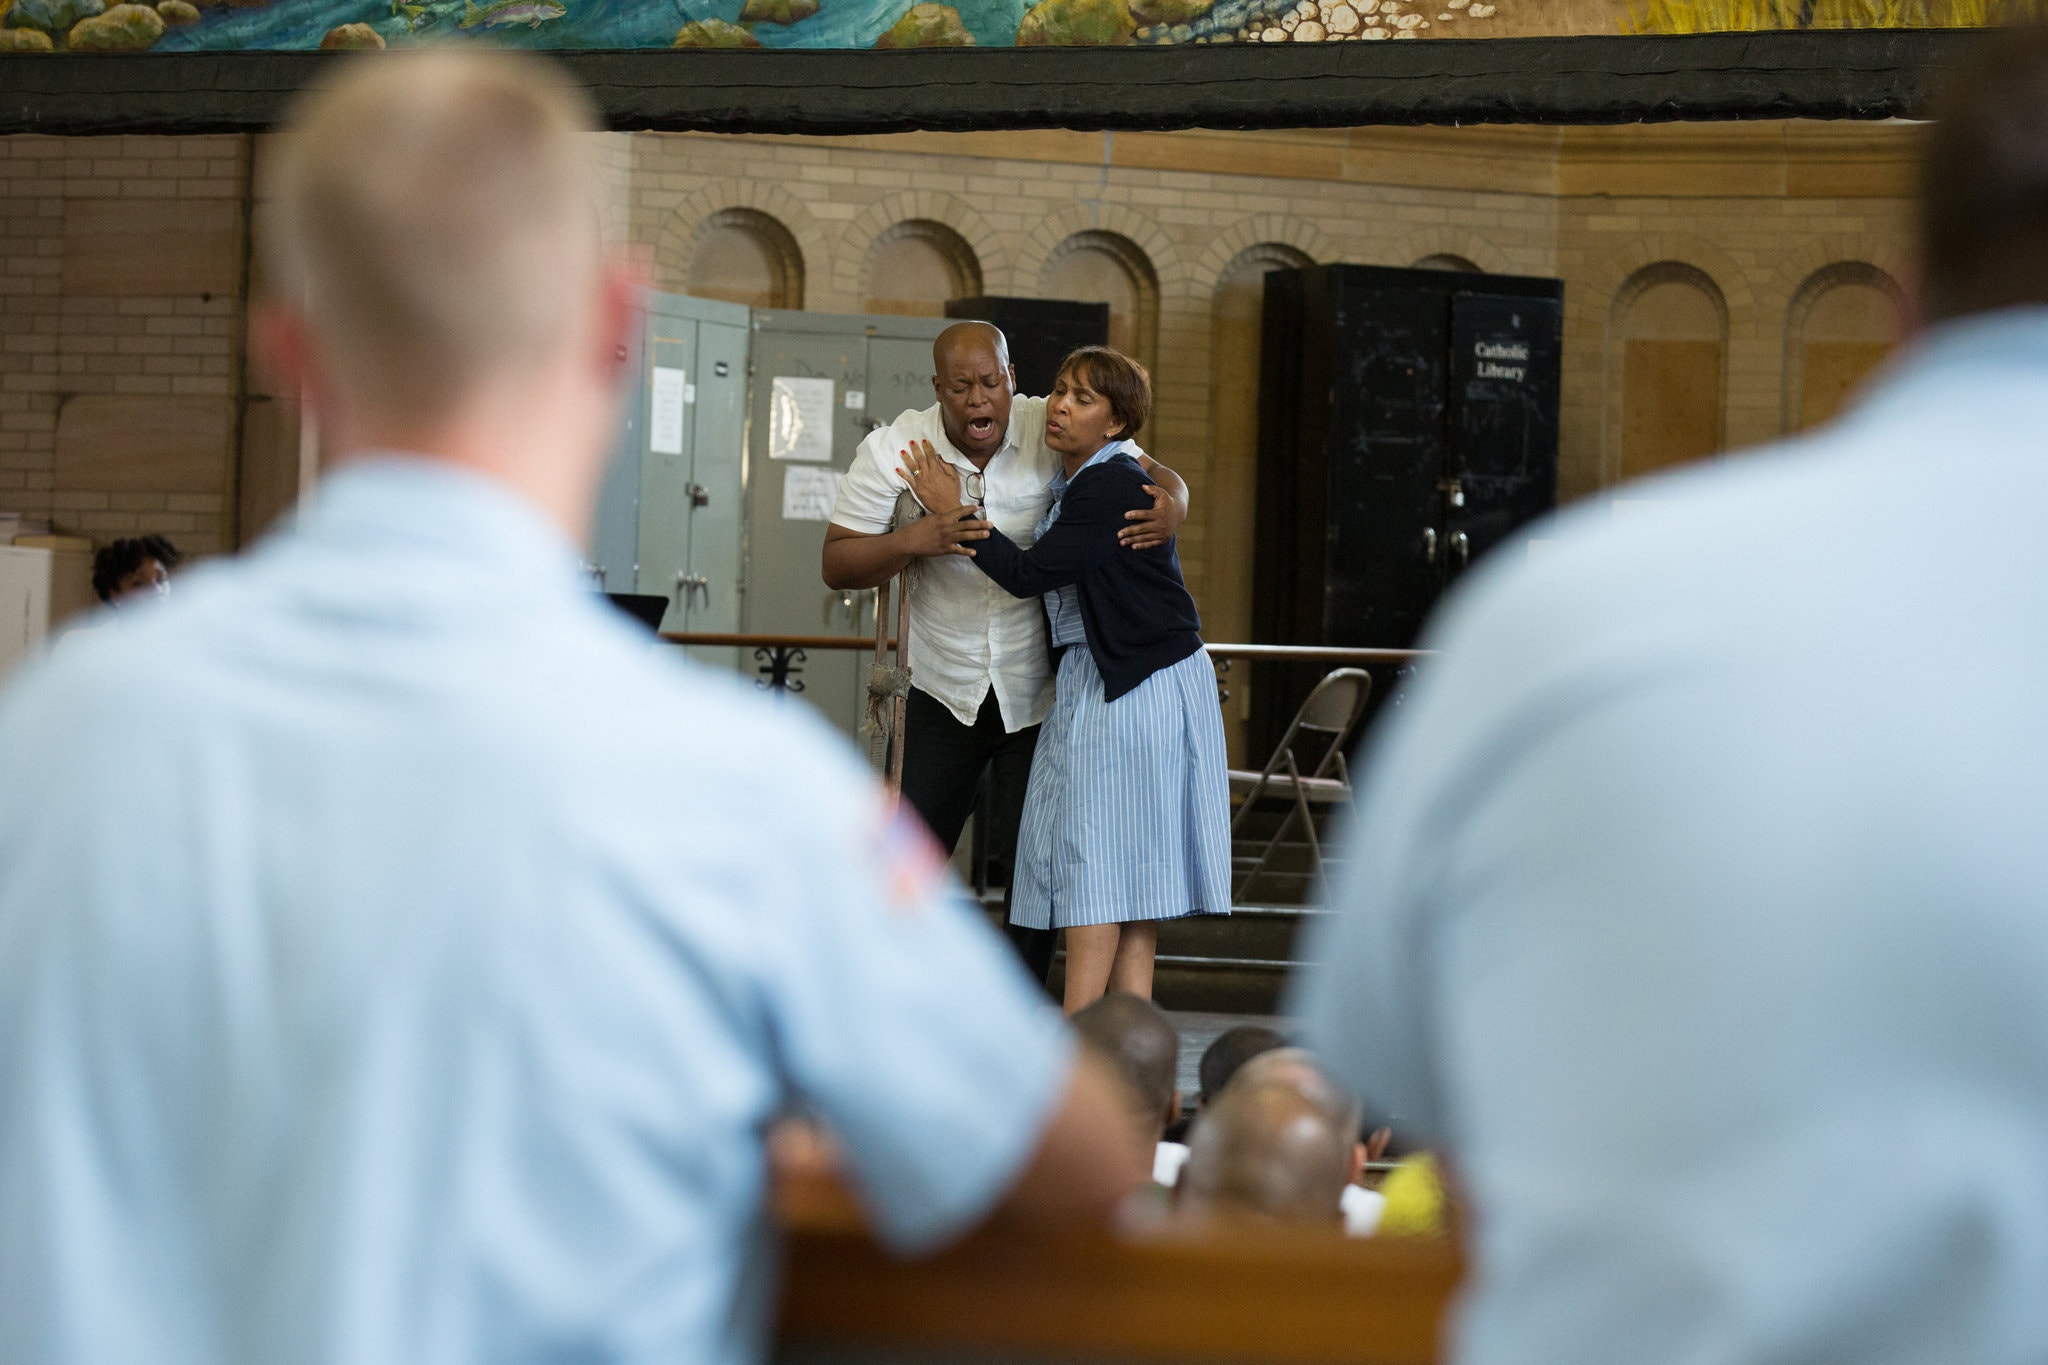 """Musa Ngqungwana and Talise Trevigne performed excerpts from """"Porgy and Bess"""" at Attica Correctional Facility in Attica, N.Y. Photo Credit: Mike Bradley for The New York Times"""